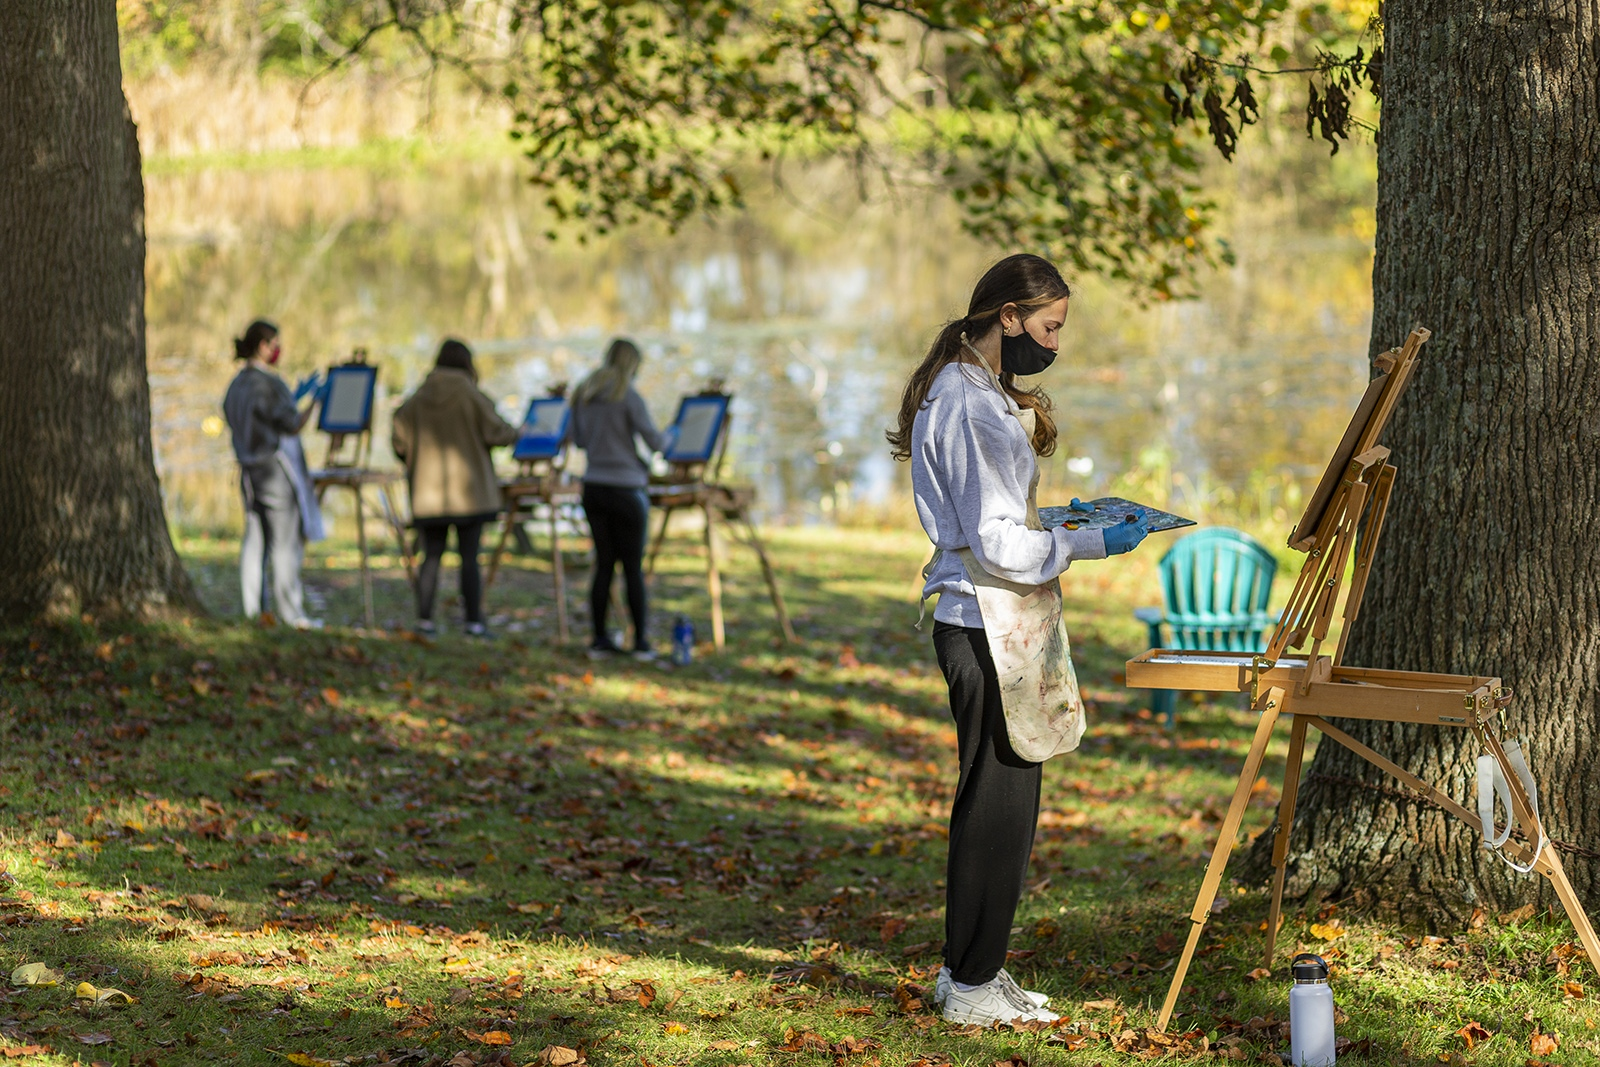 Students paint on easels outdoors while wearing masks